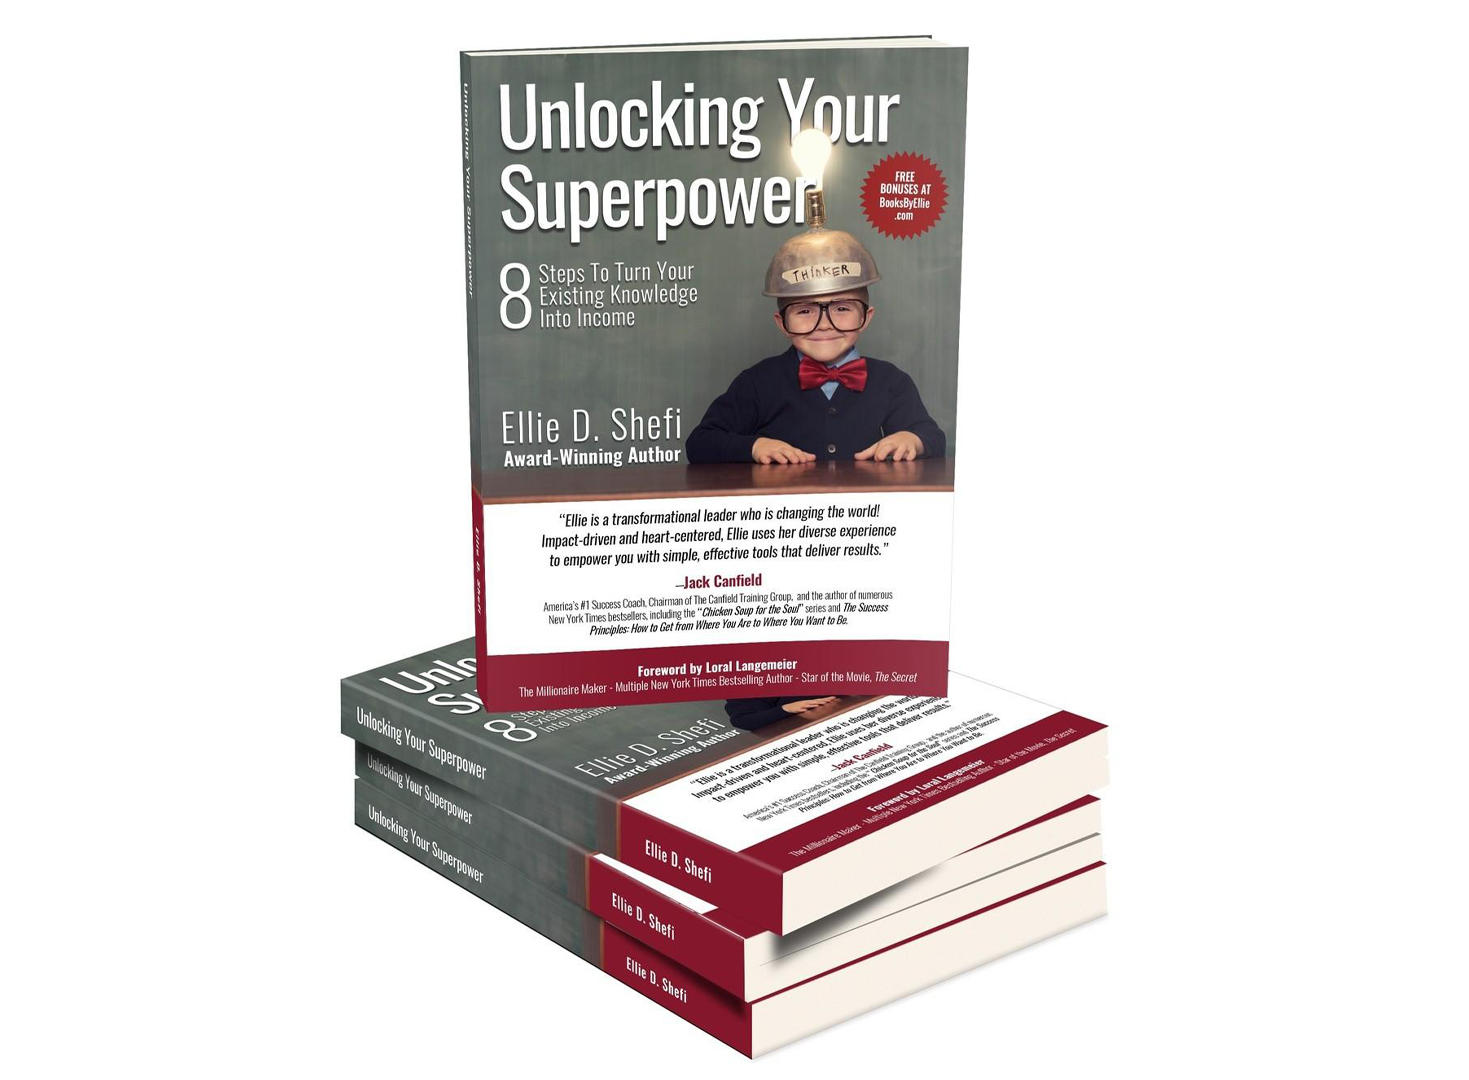 Unlocking Your Superpower: 8 Steps to Turn Your Existing Knowledge Into Income